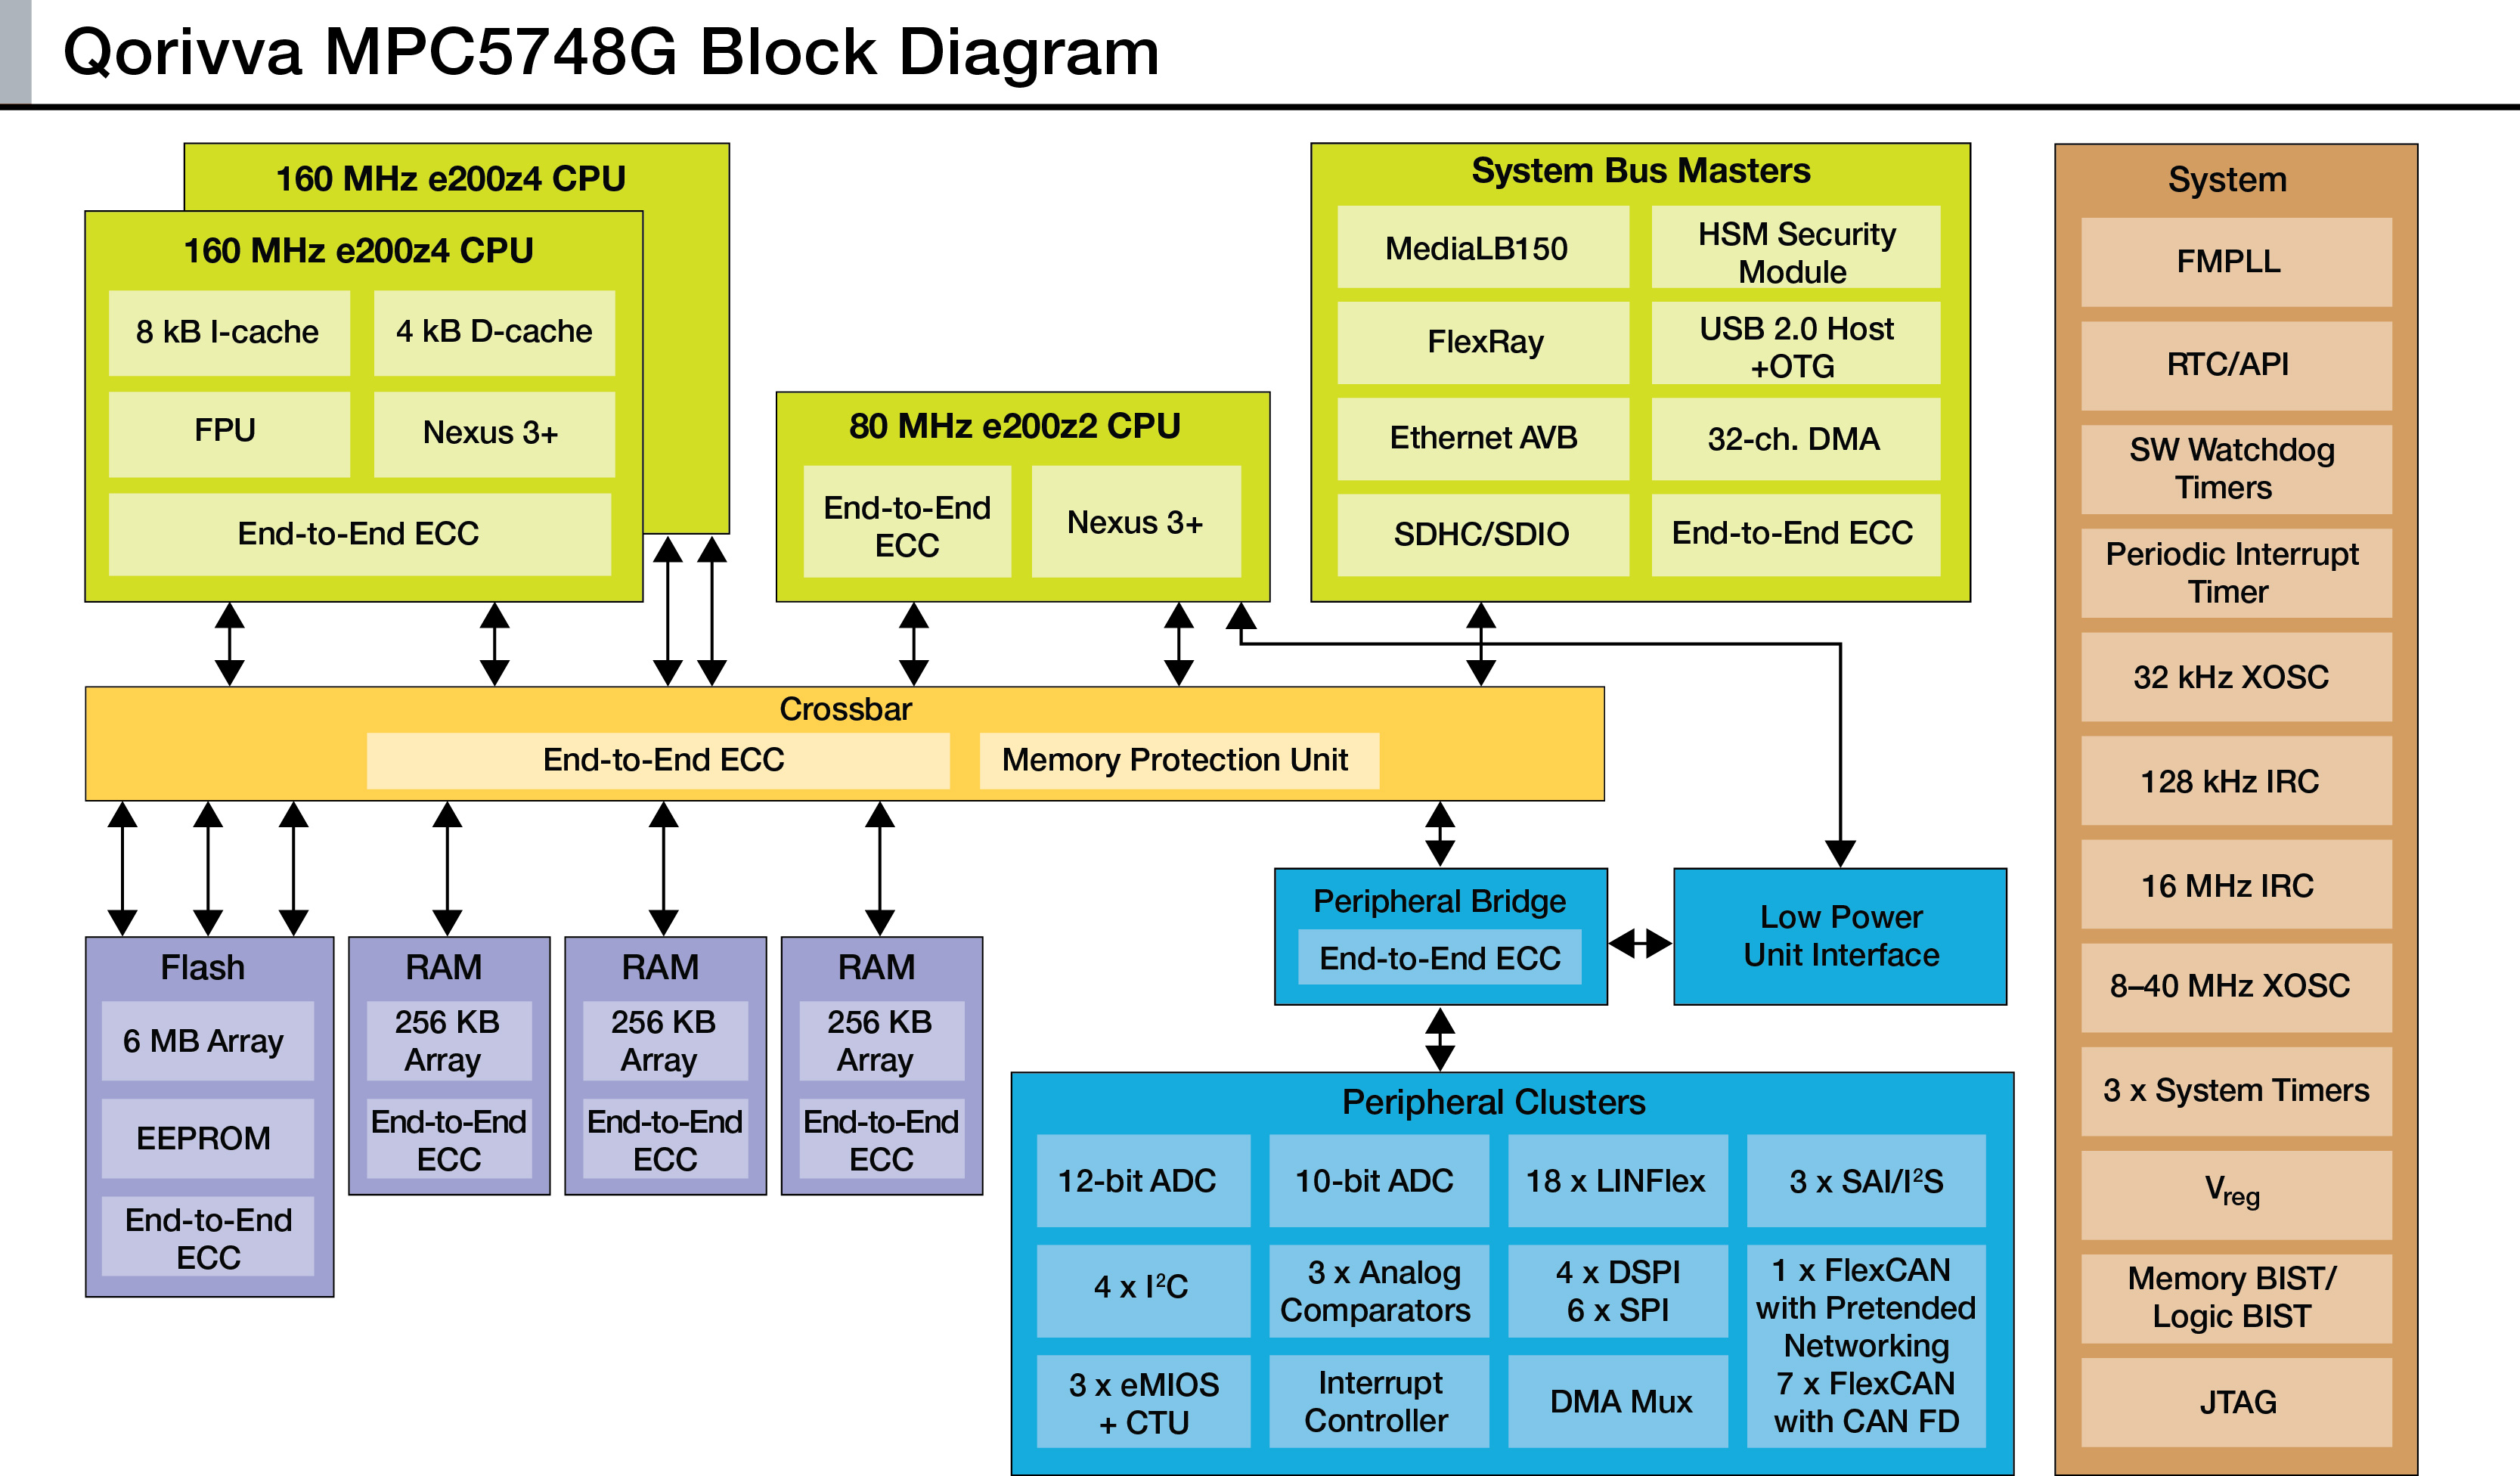 Wiring Diagram Freescale Smart Car Detailed Schematics Harness Mcus Simplify System Cut Vehicle Weight Quick